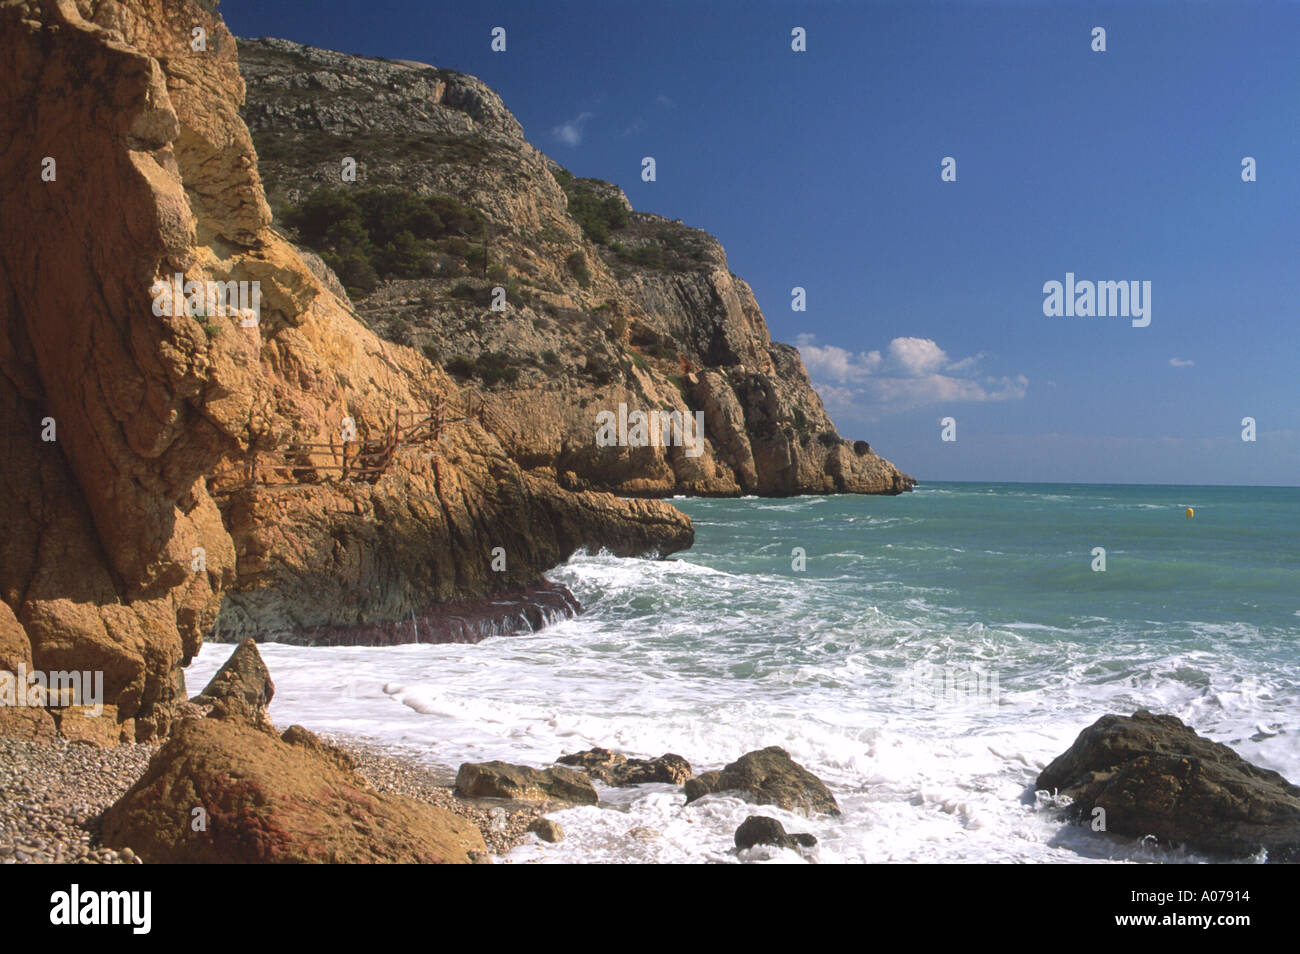 Costa Blanca Costa Blanca Stock Photos And Costa Blanca Stock Images Alamy